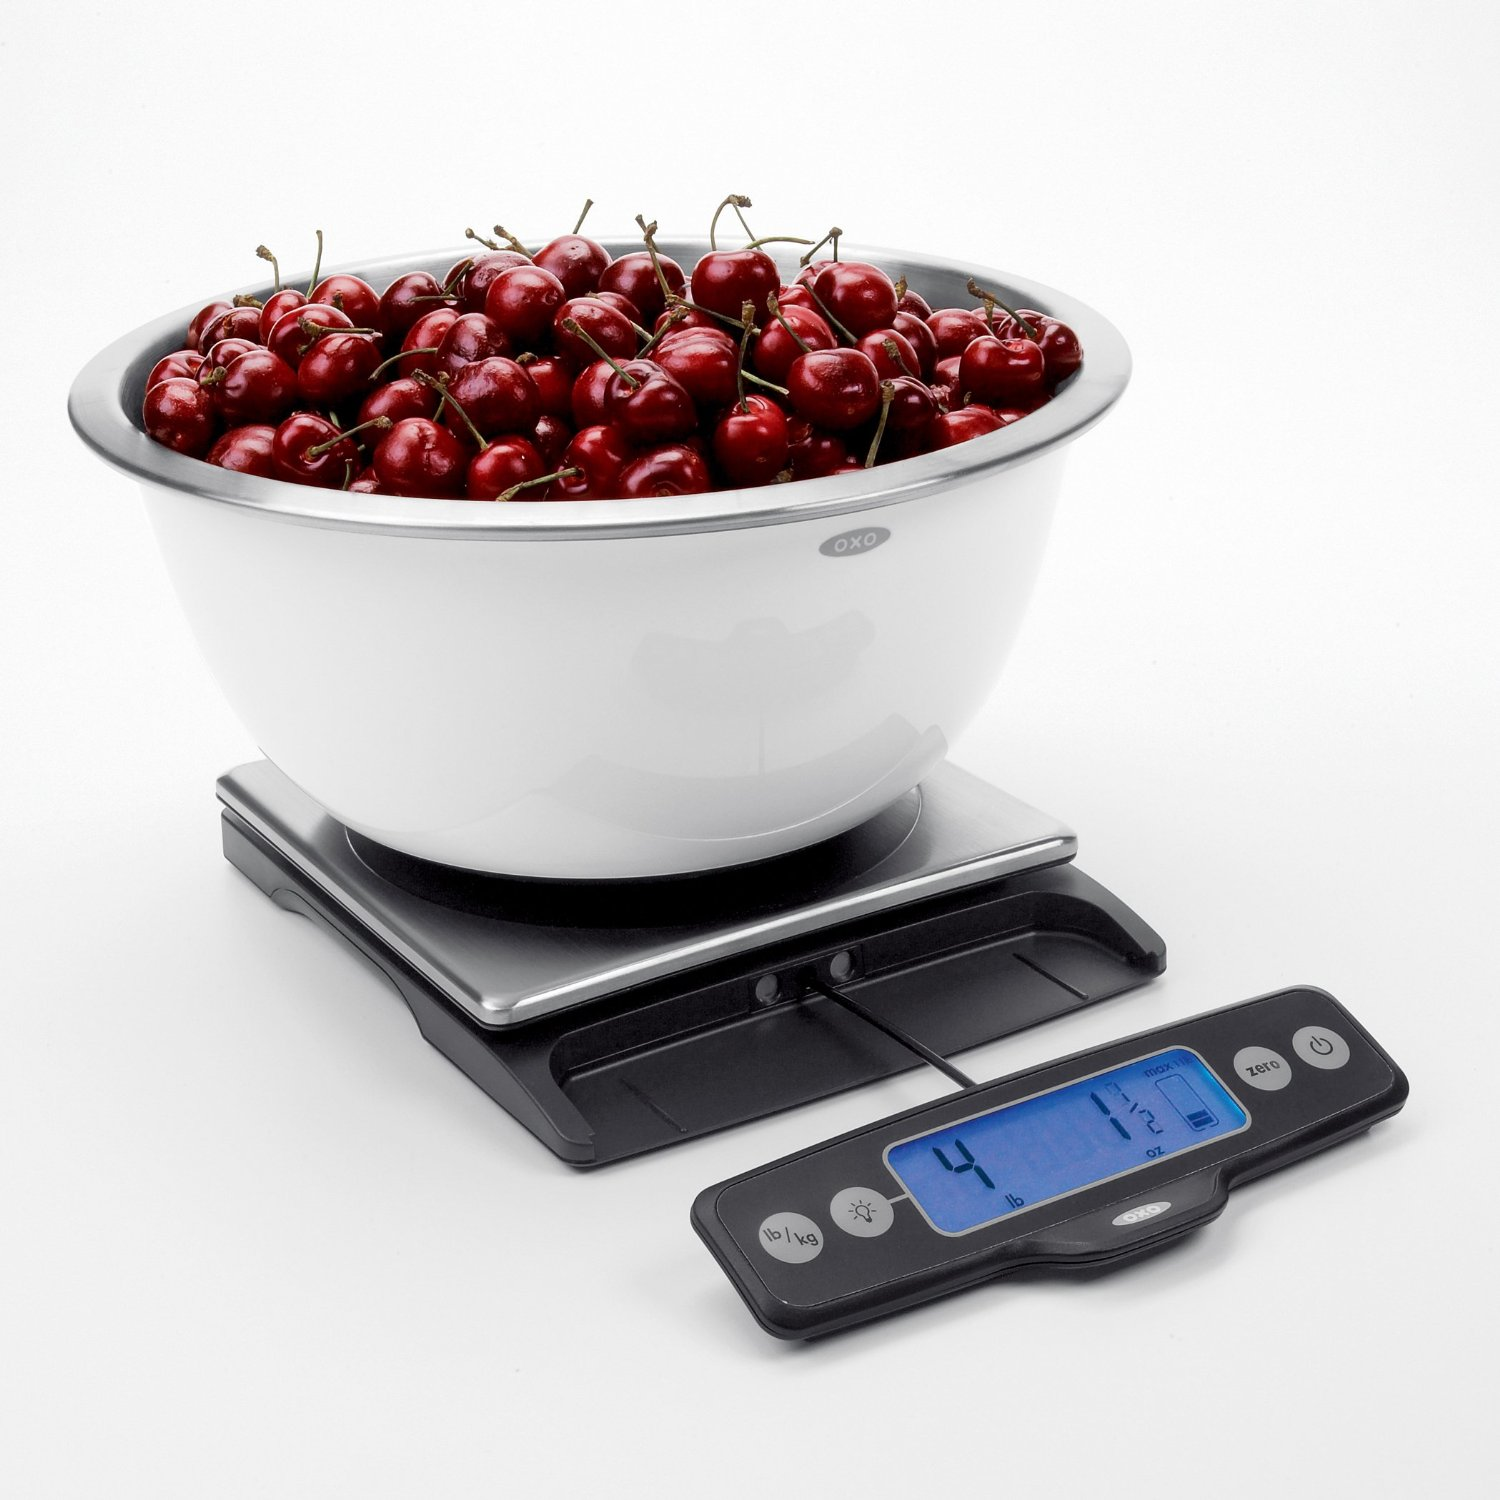 OXO Digital Pull-Out Food Scale